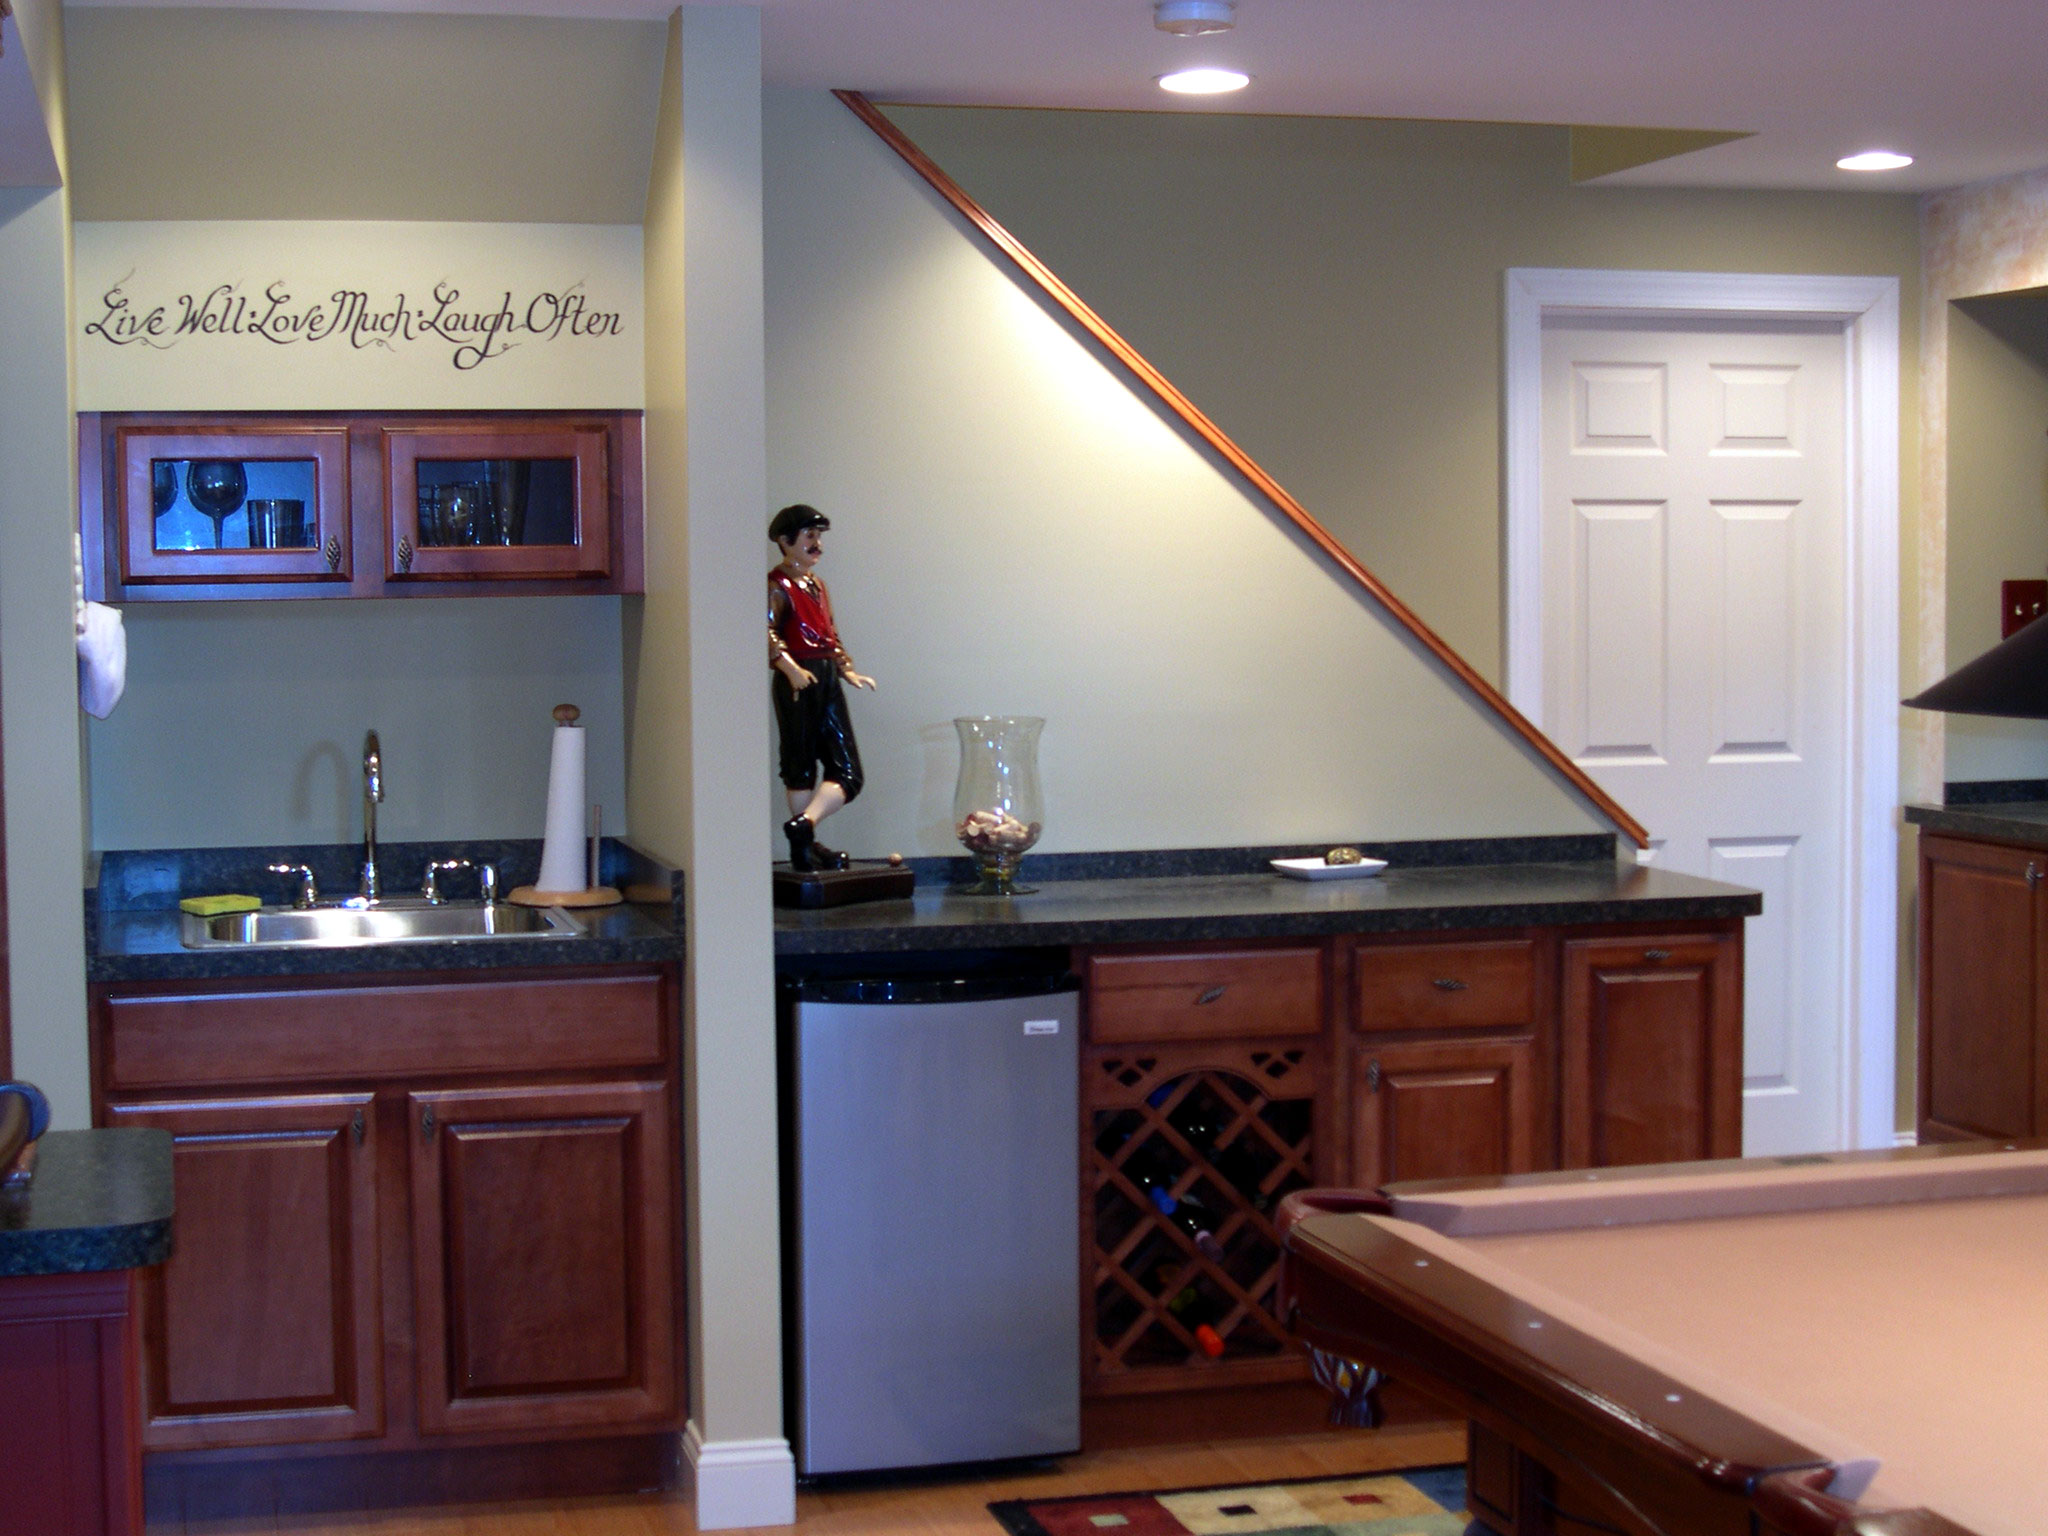 sbi professional basement remodeling. Black Bedroom Furniture Sets. Home Design Ideas